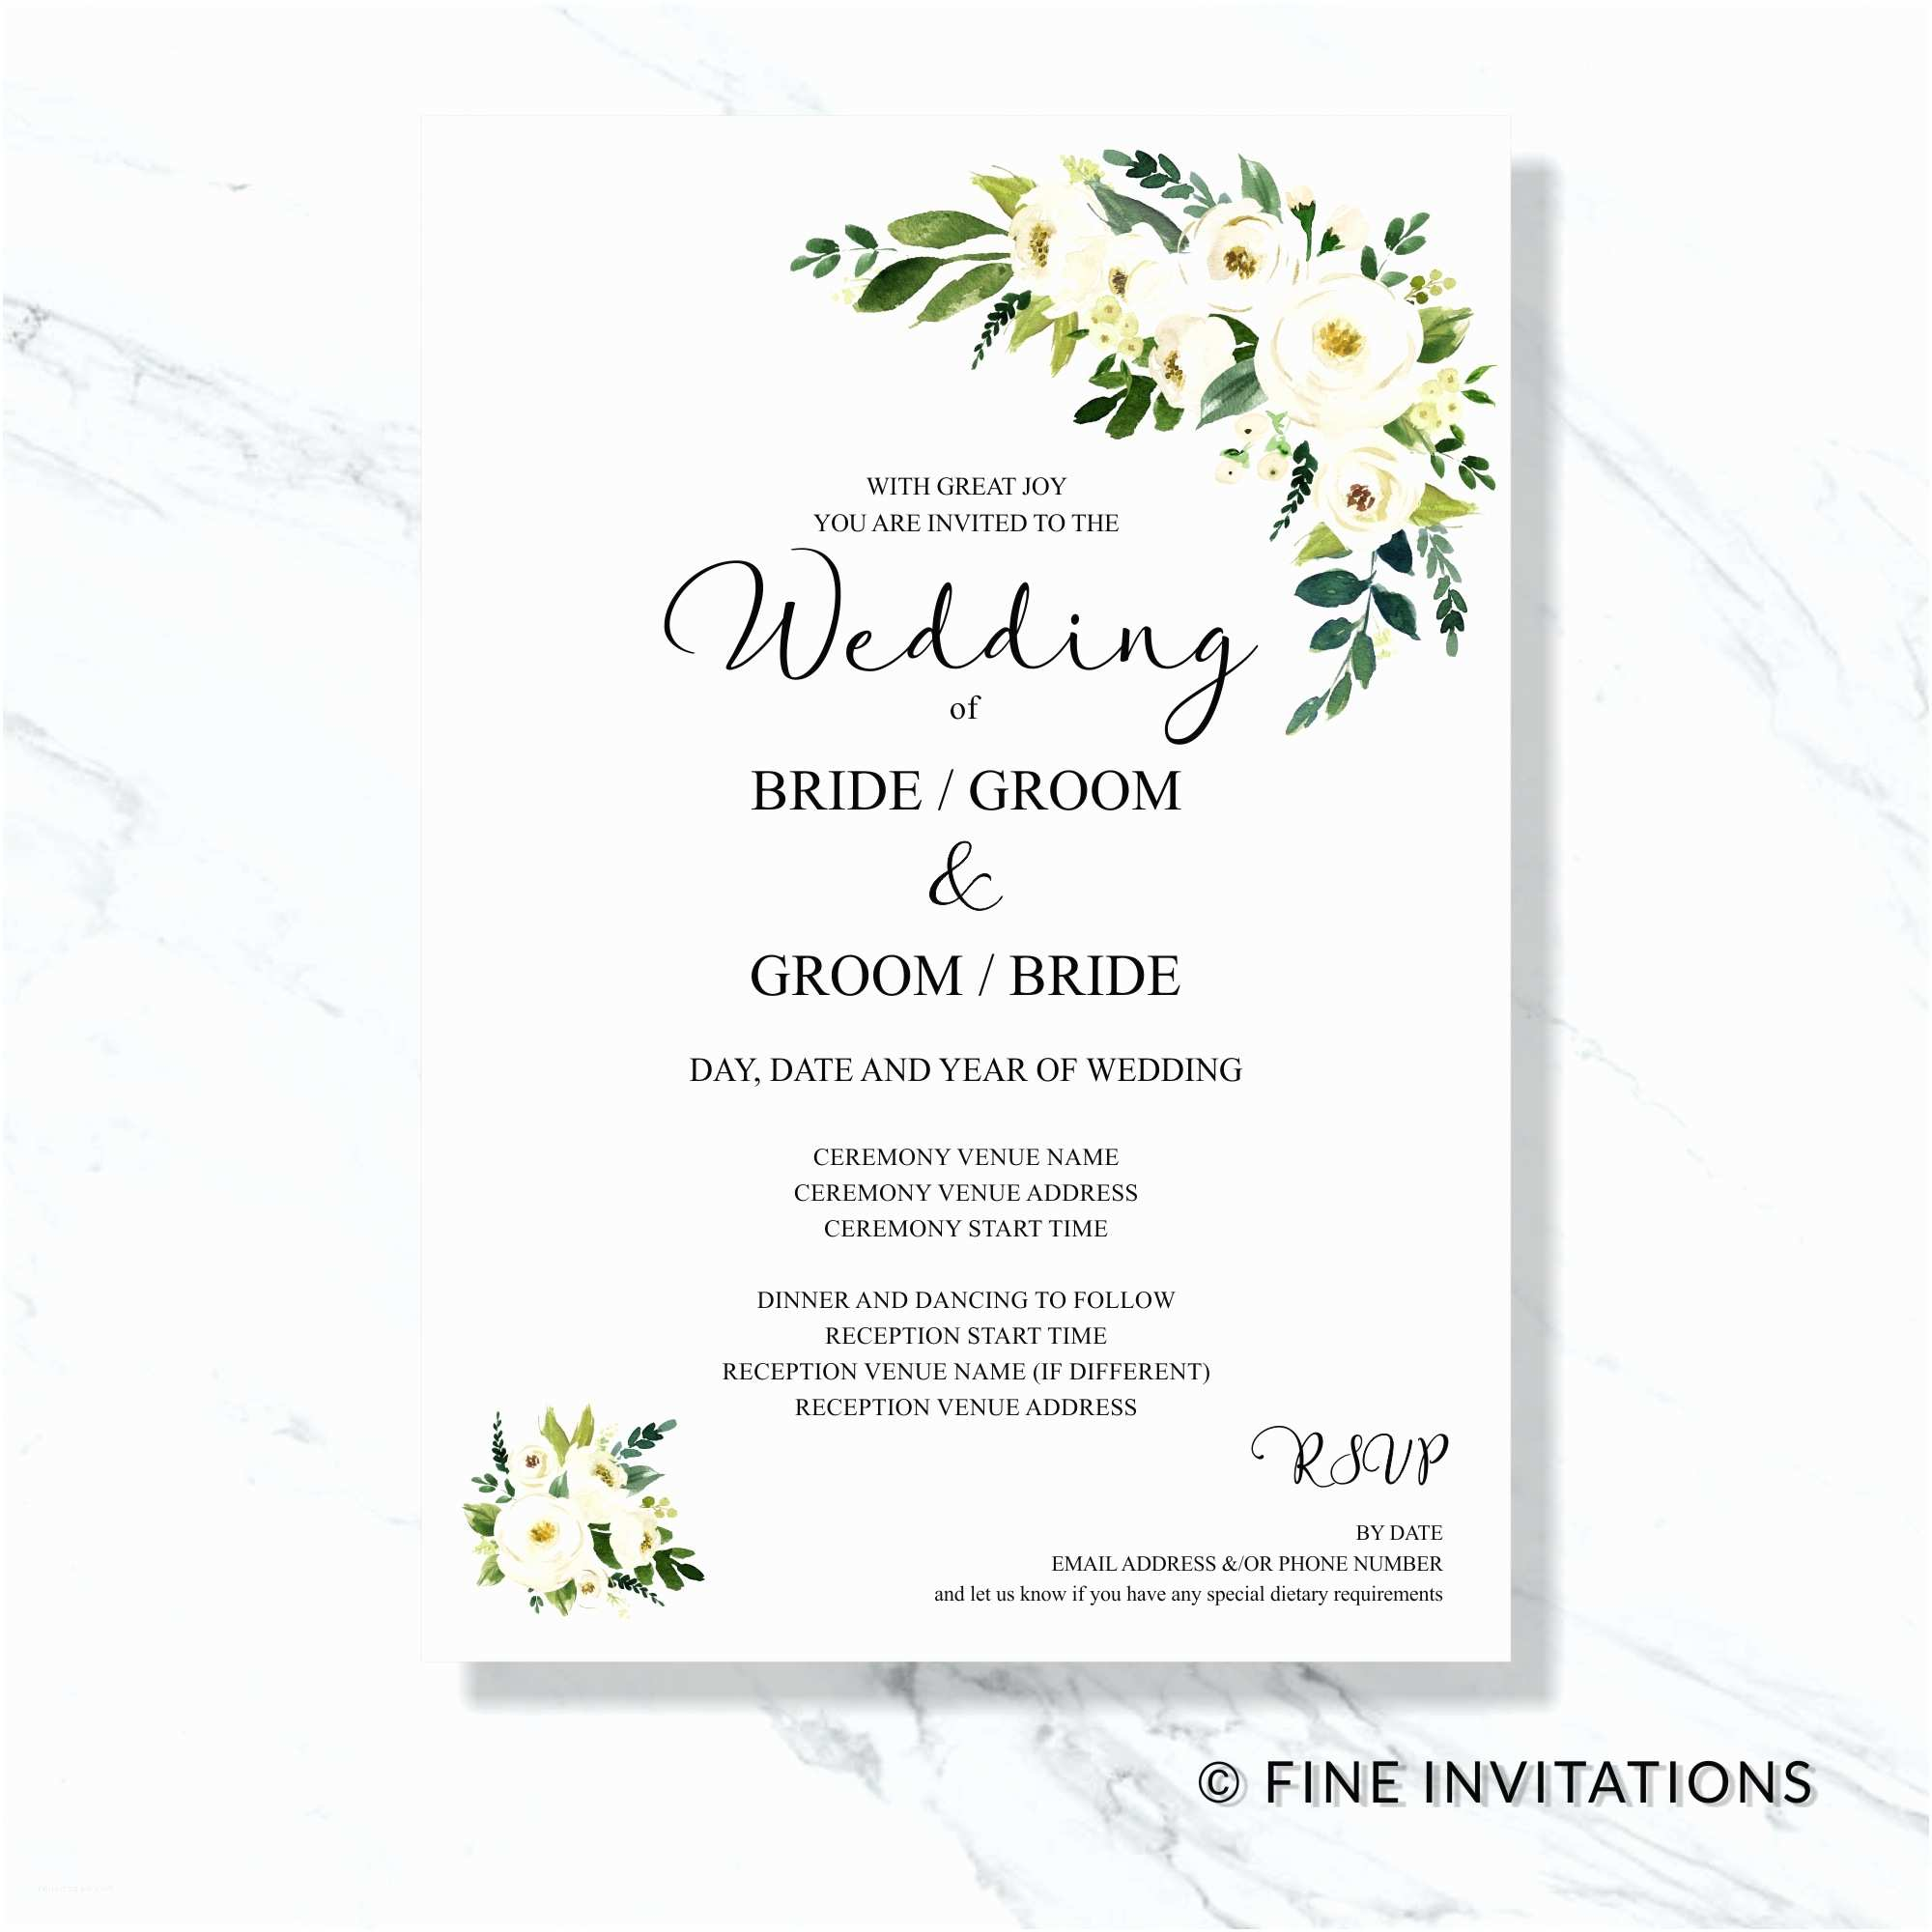 Wedding Invitation Cost Estimate Floral Wedding Invitations Fine Invitations Sydney